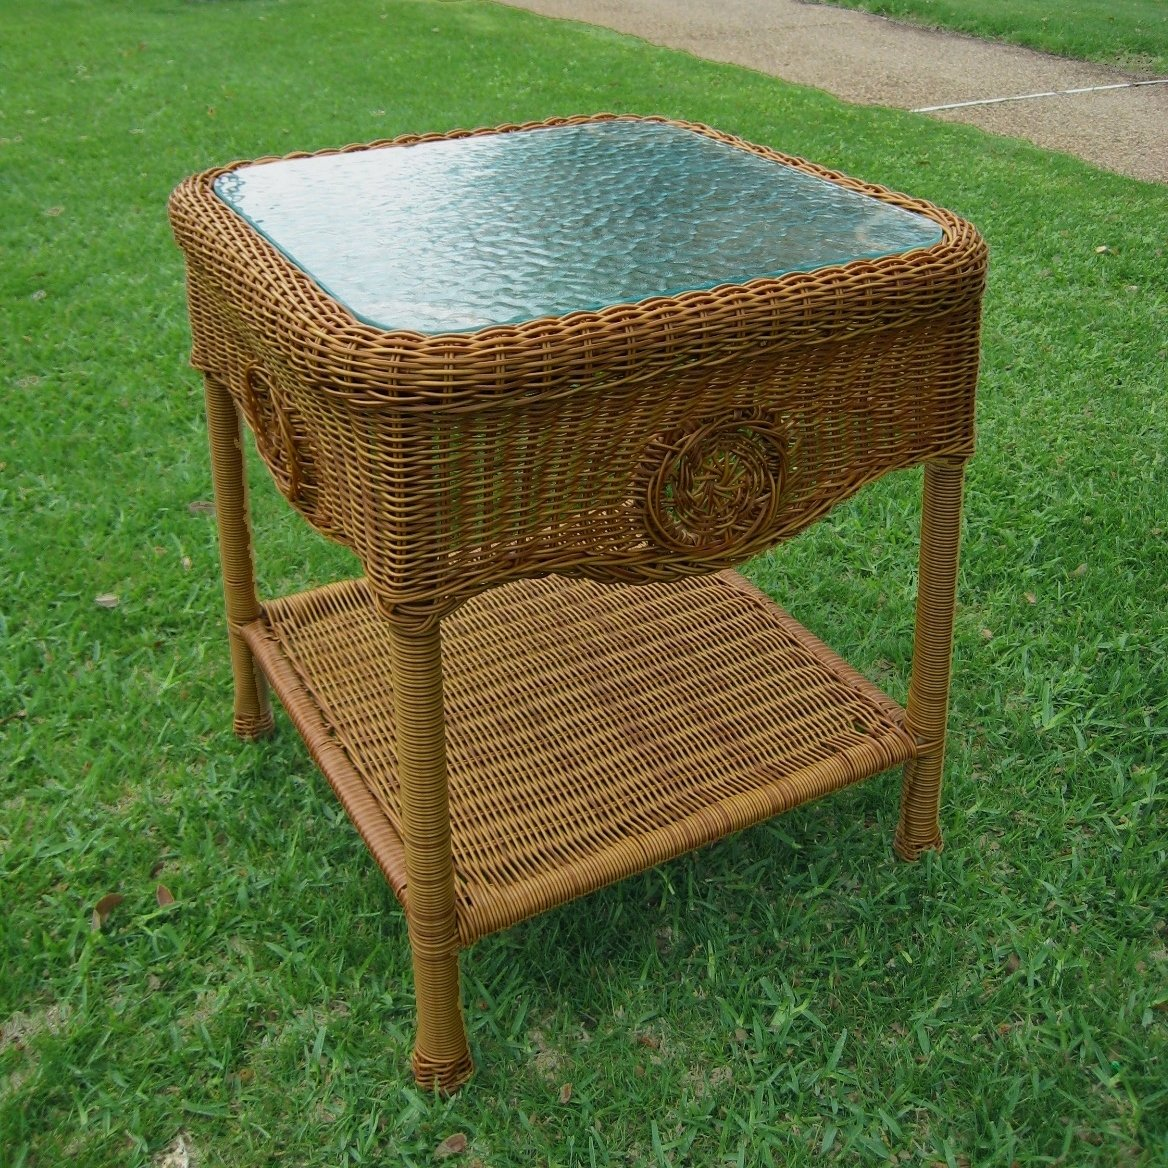 international caravan chelsea inch resin wicker side table outdoor brown free shipping today night lamp patio umbrella with base included modern accent drawer lucite coffee